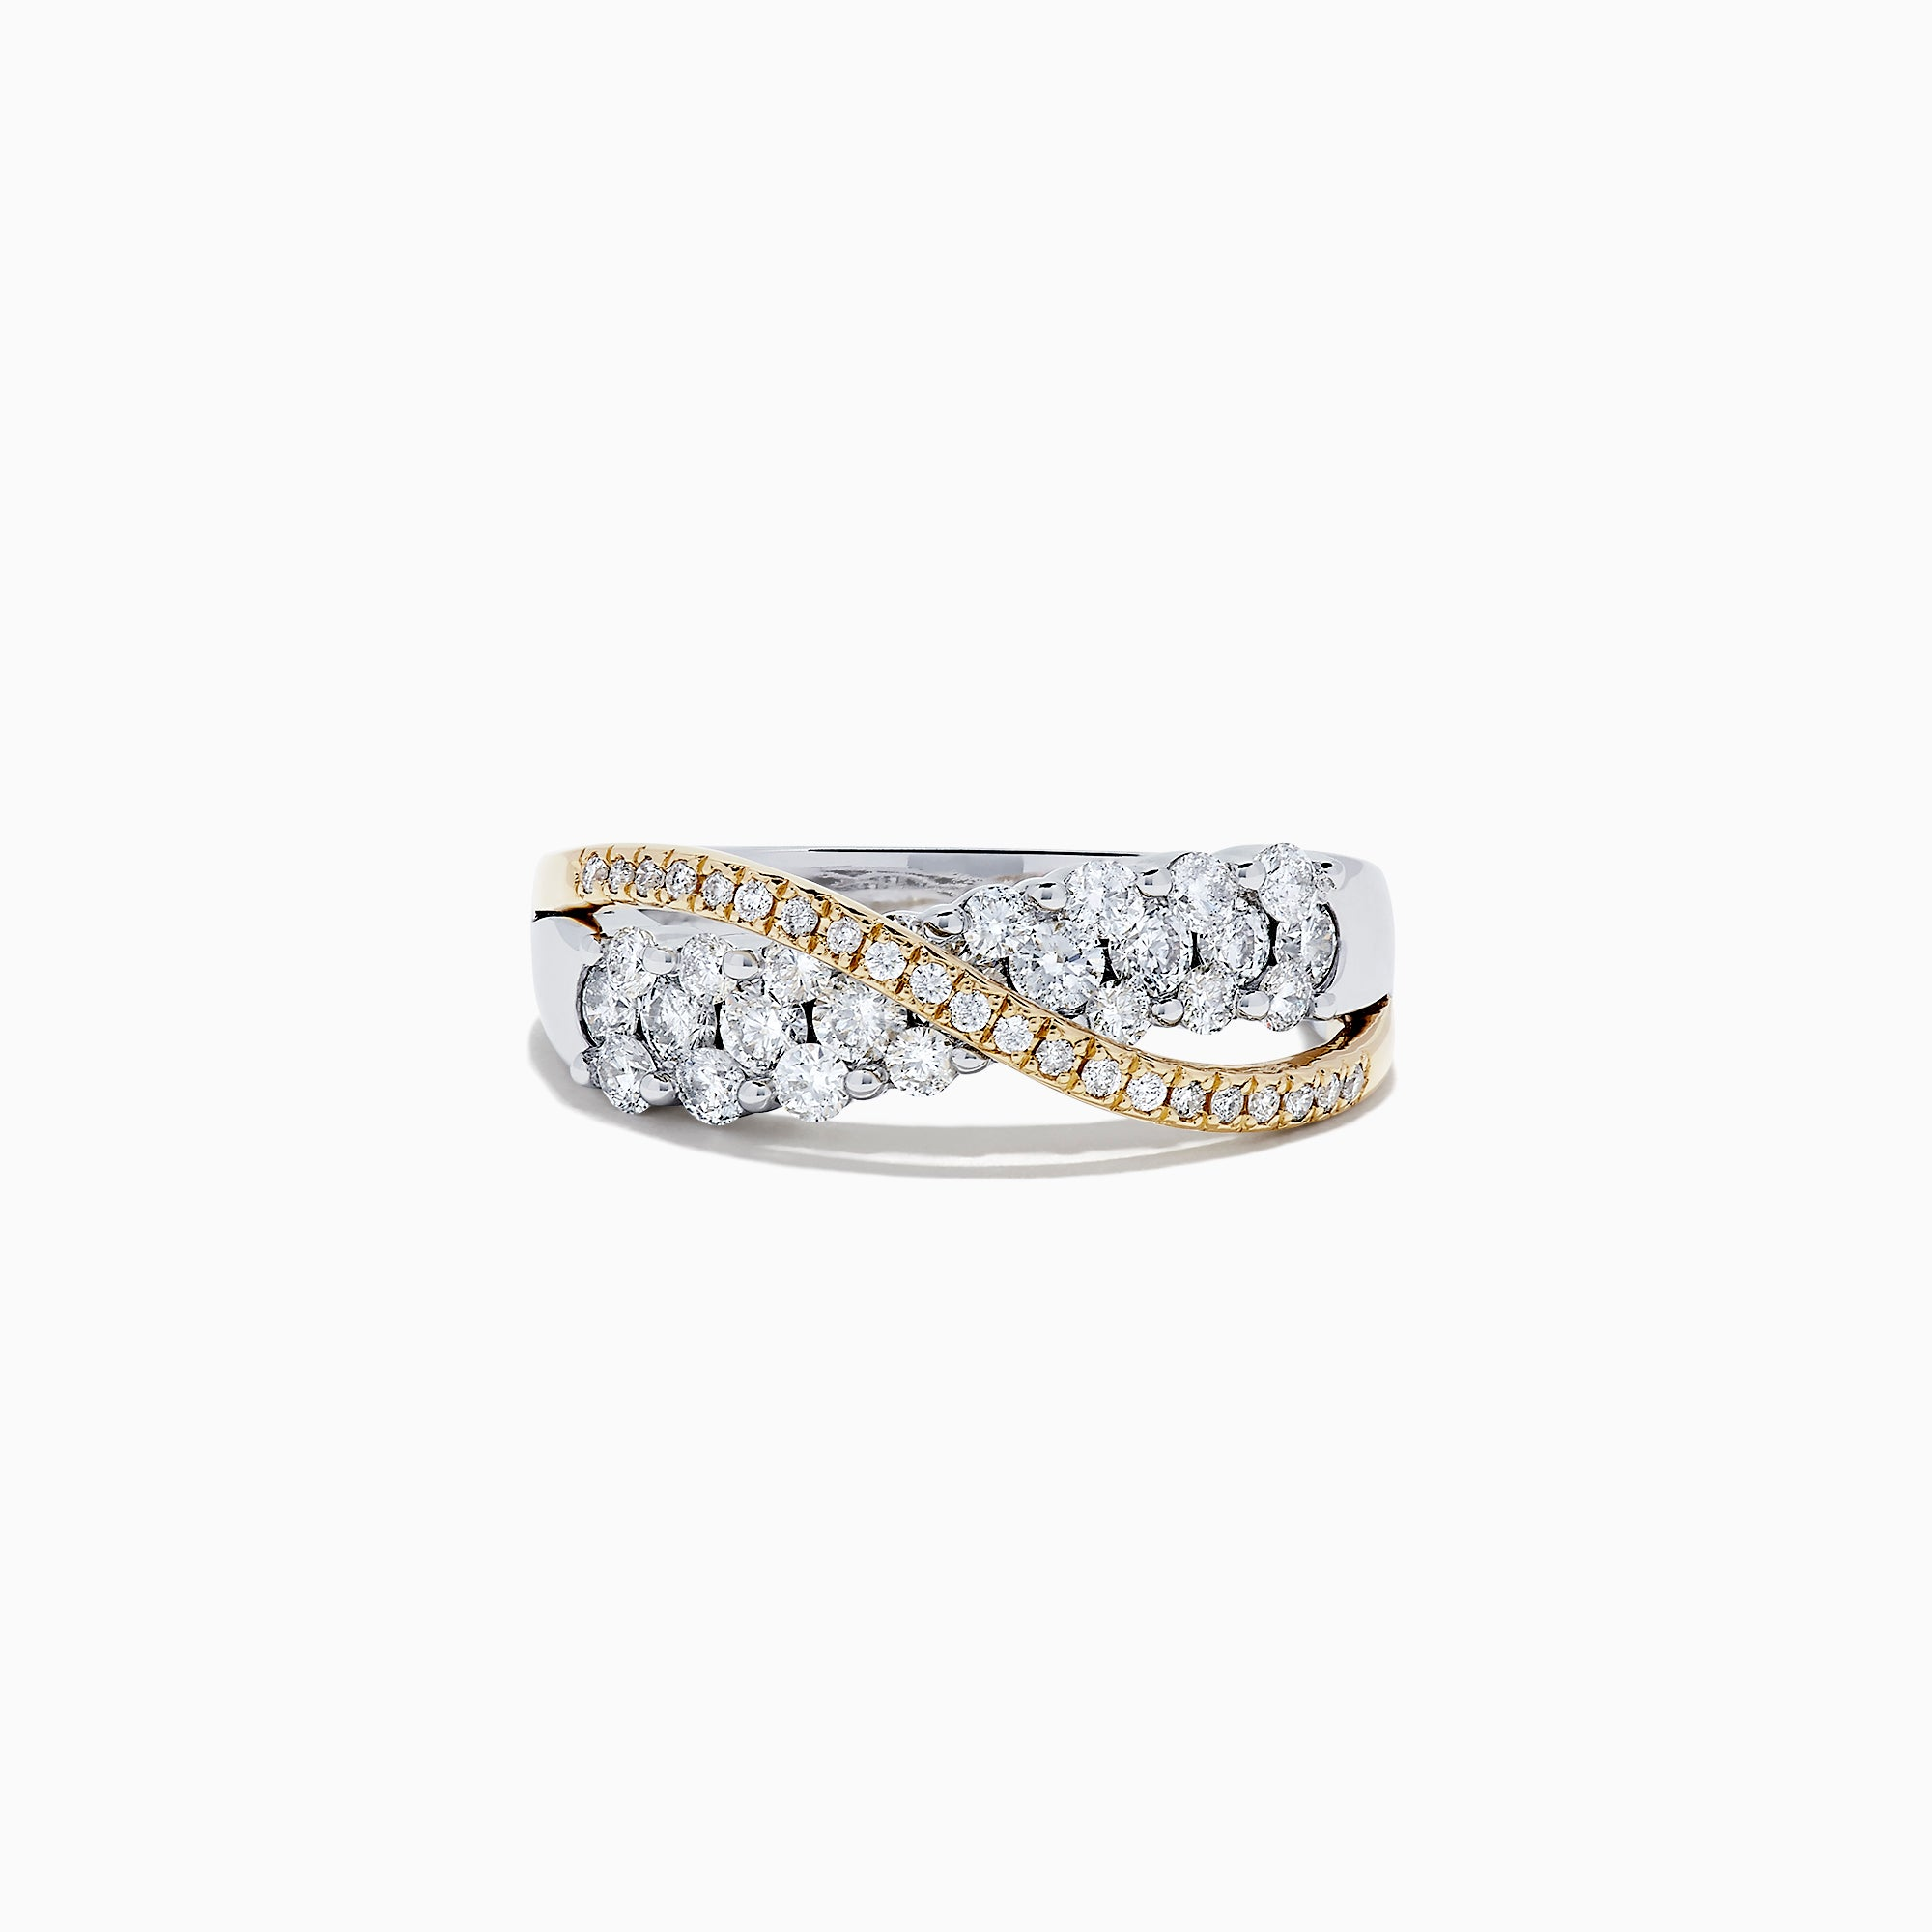 14K White and Yellow Gold Diamond Crossover Ring, 1.00 TCW